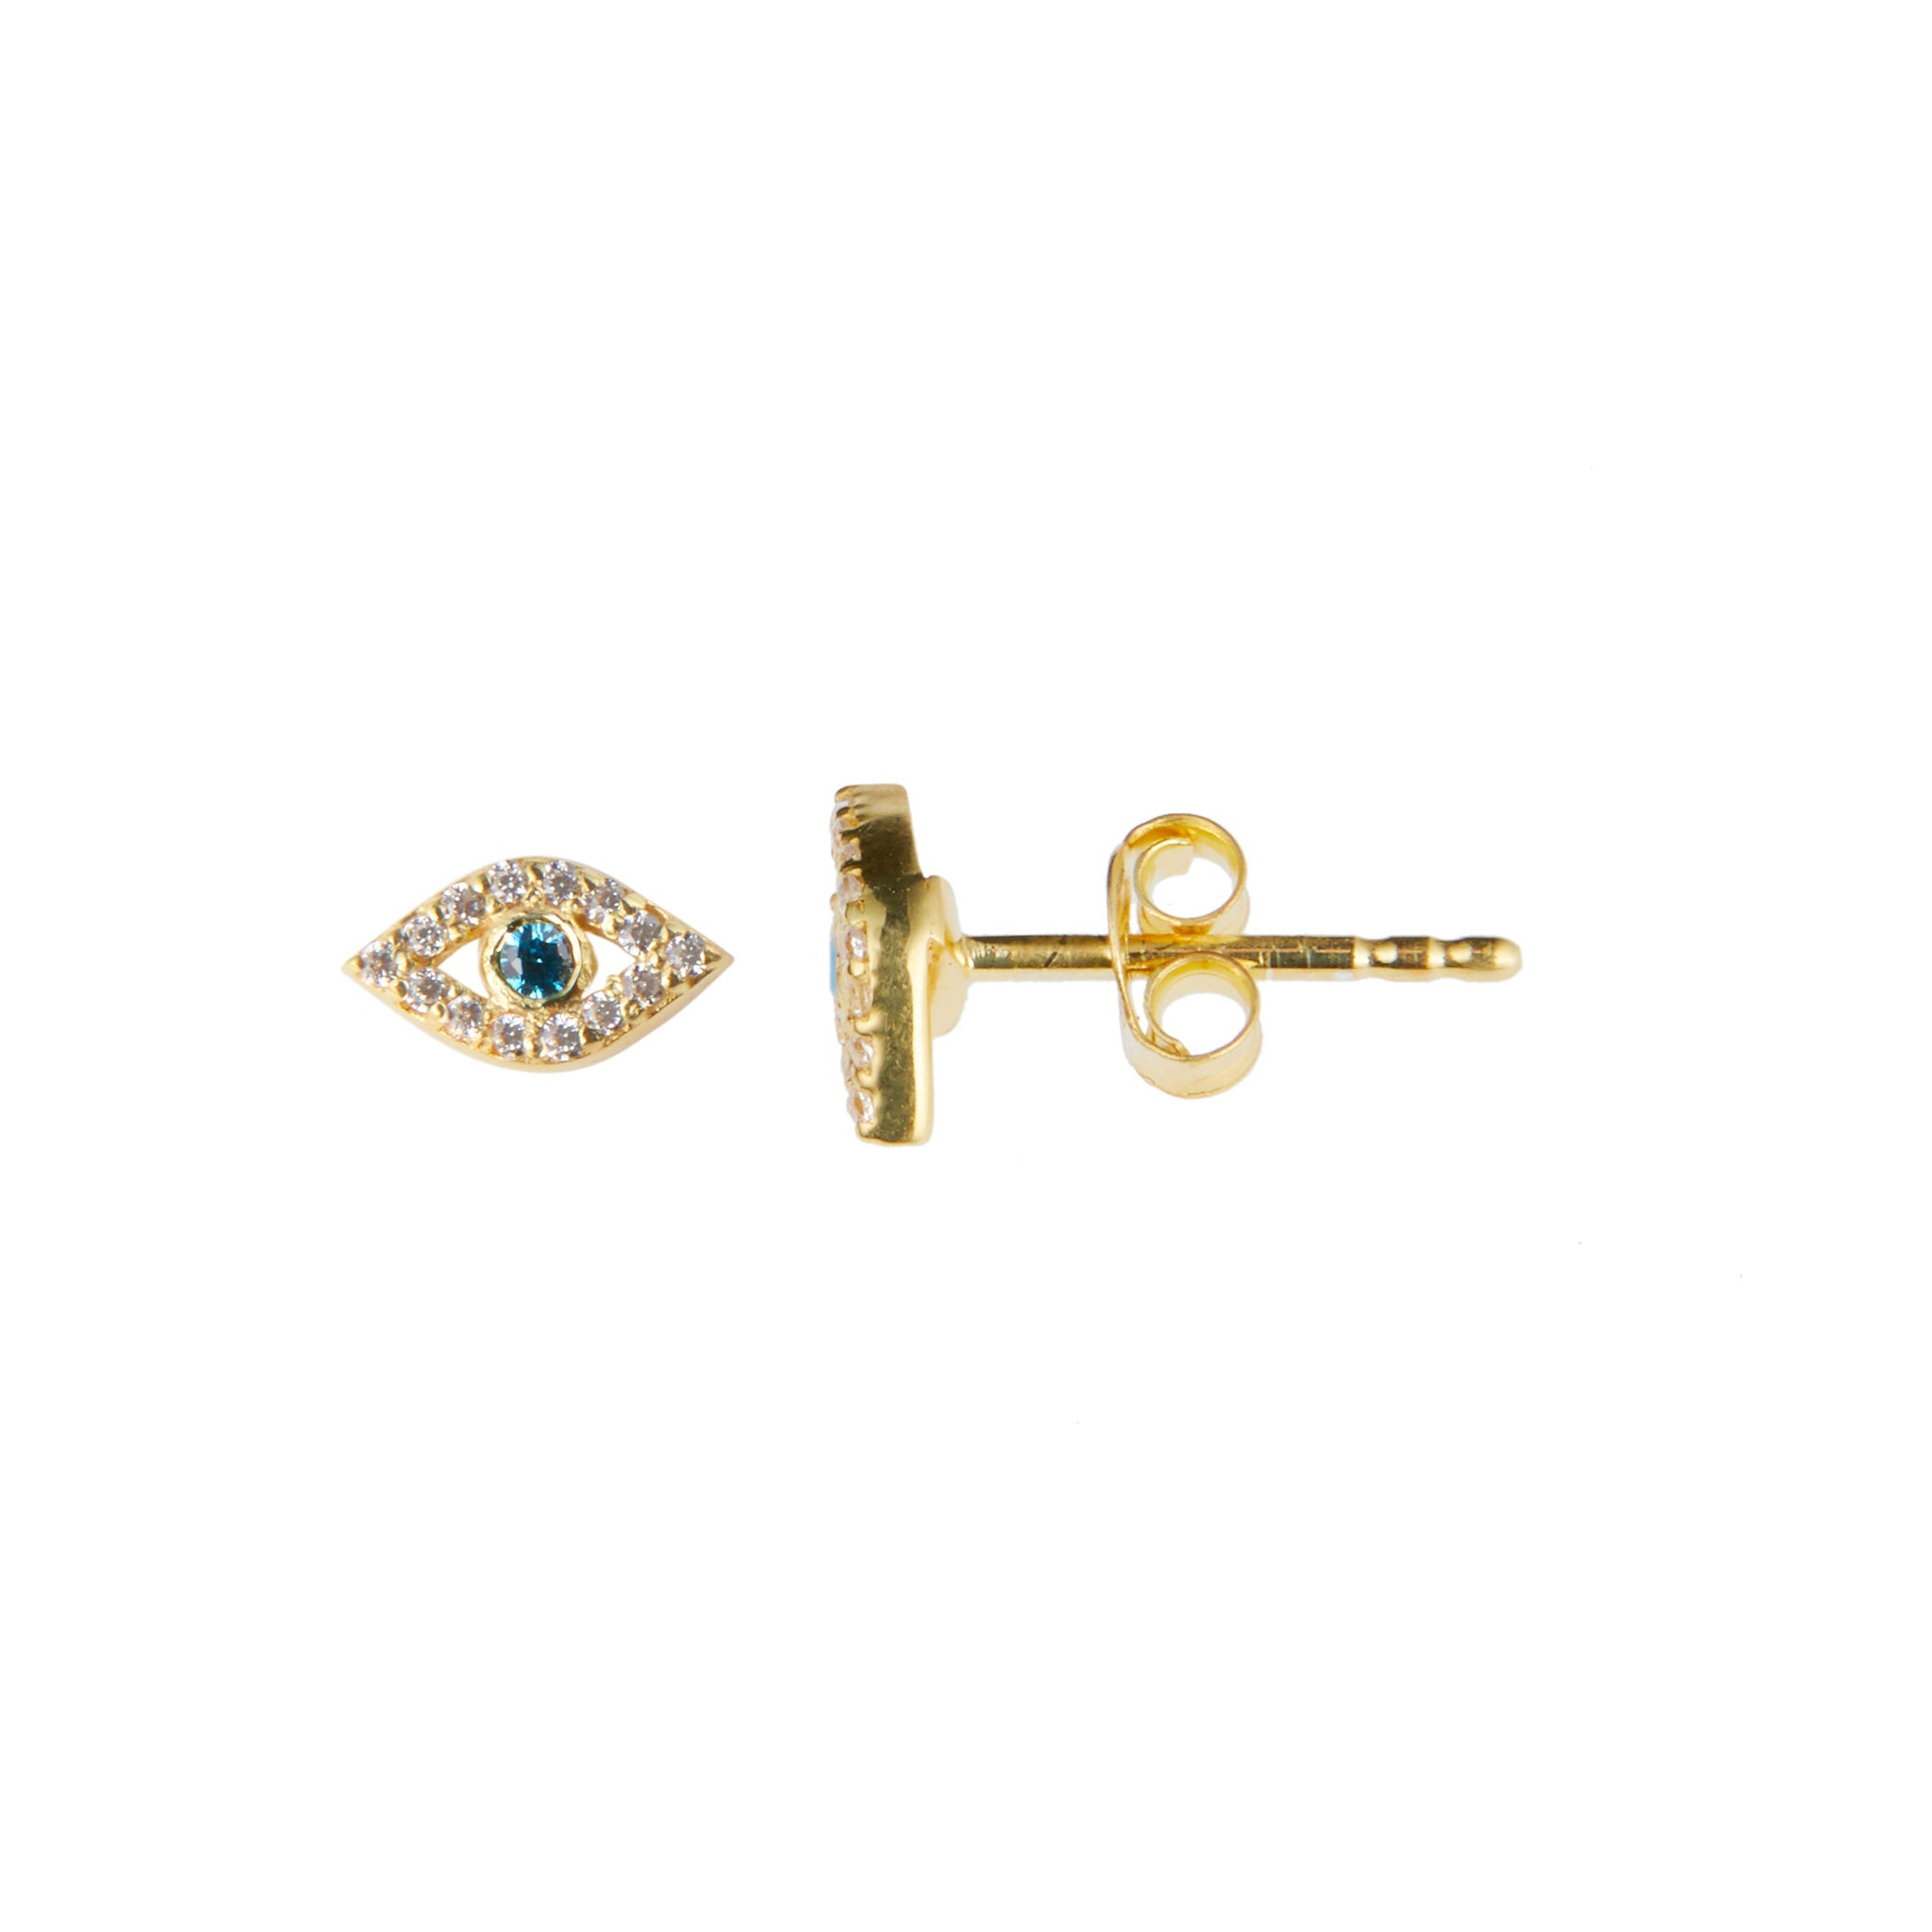 Cleo Earring in Gold with Blue Zirconia